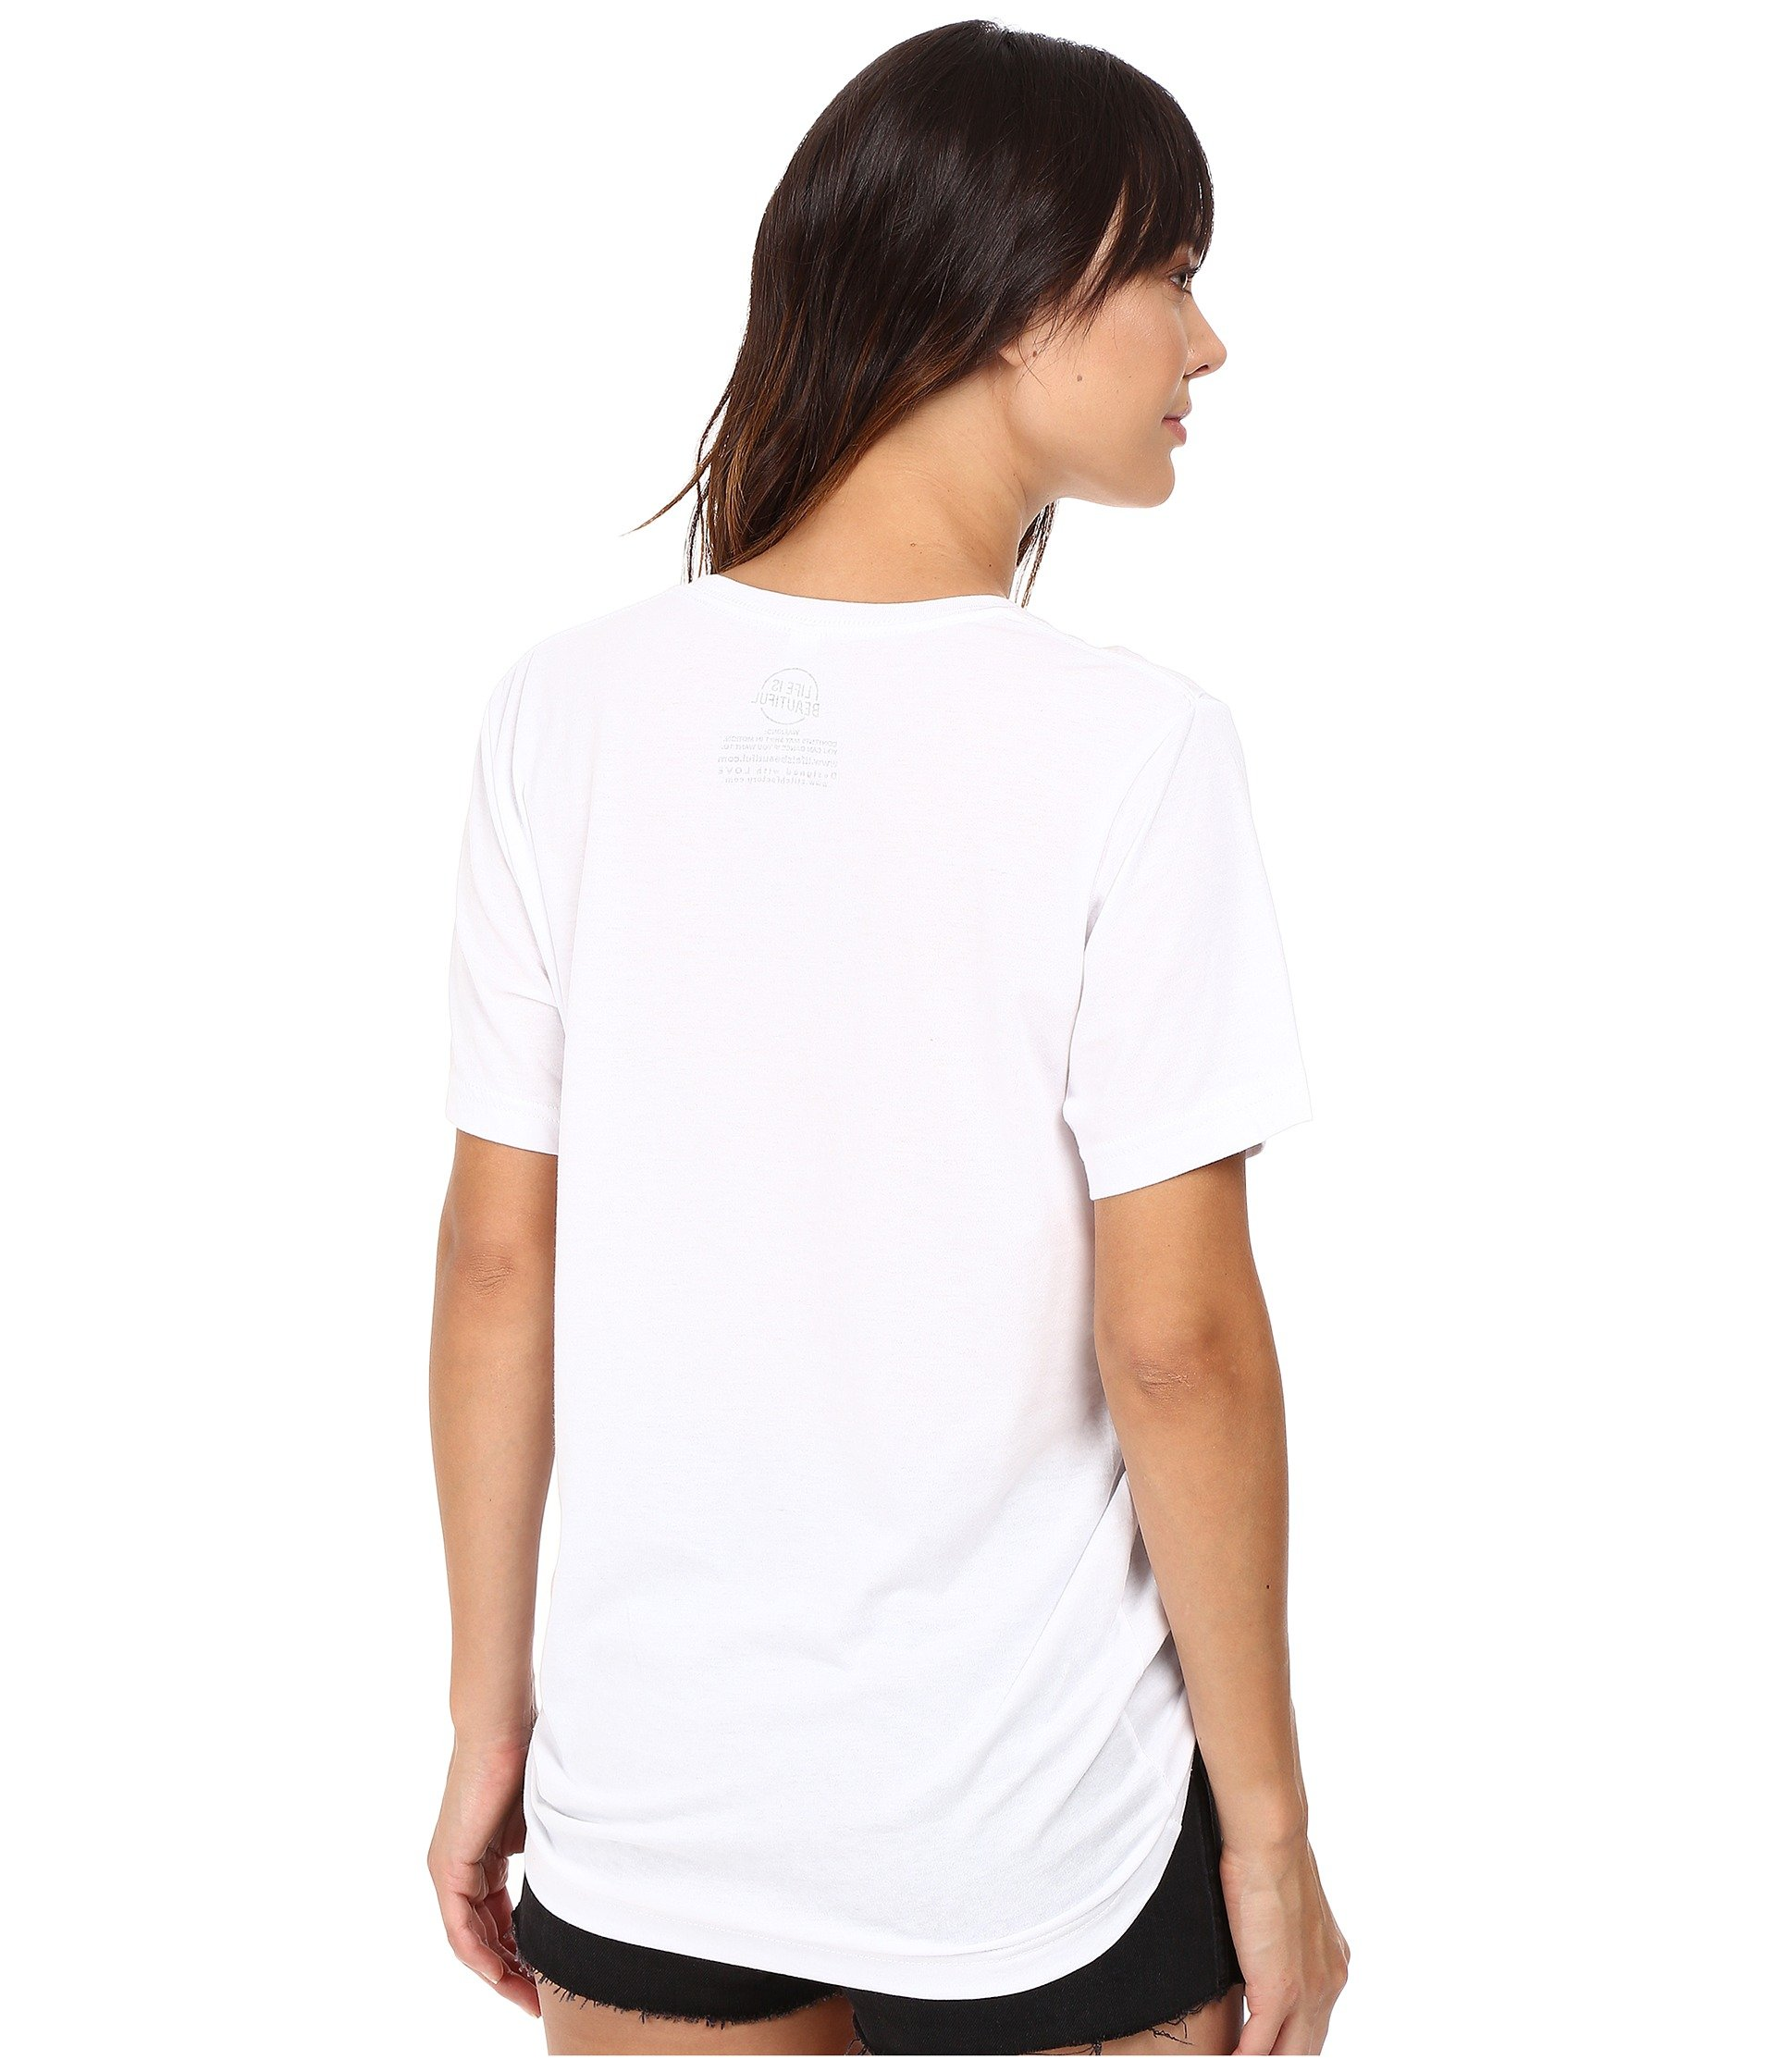 Tee Neck Script Is Beautiful Life Cactus White Crew BxCfqYPYn